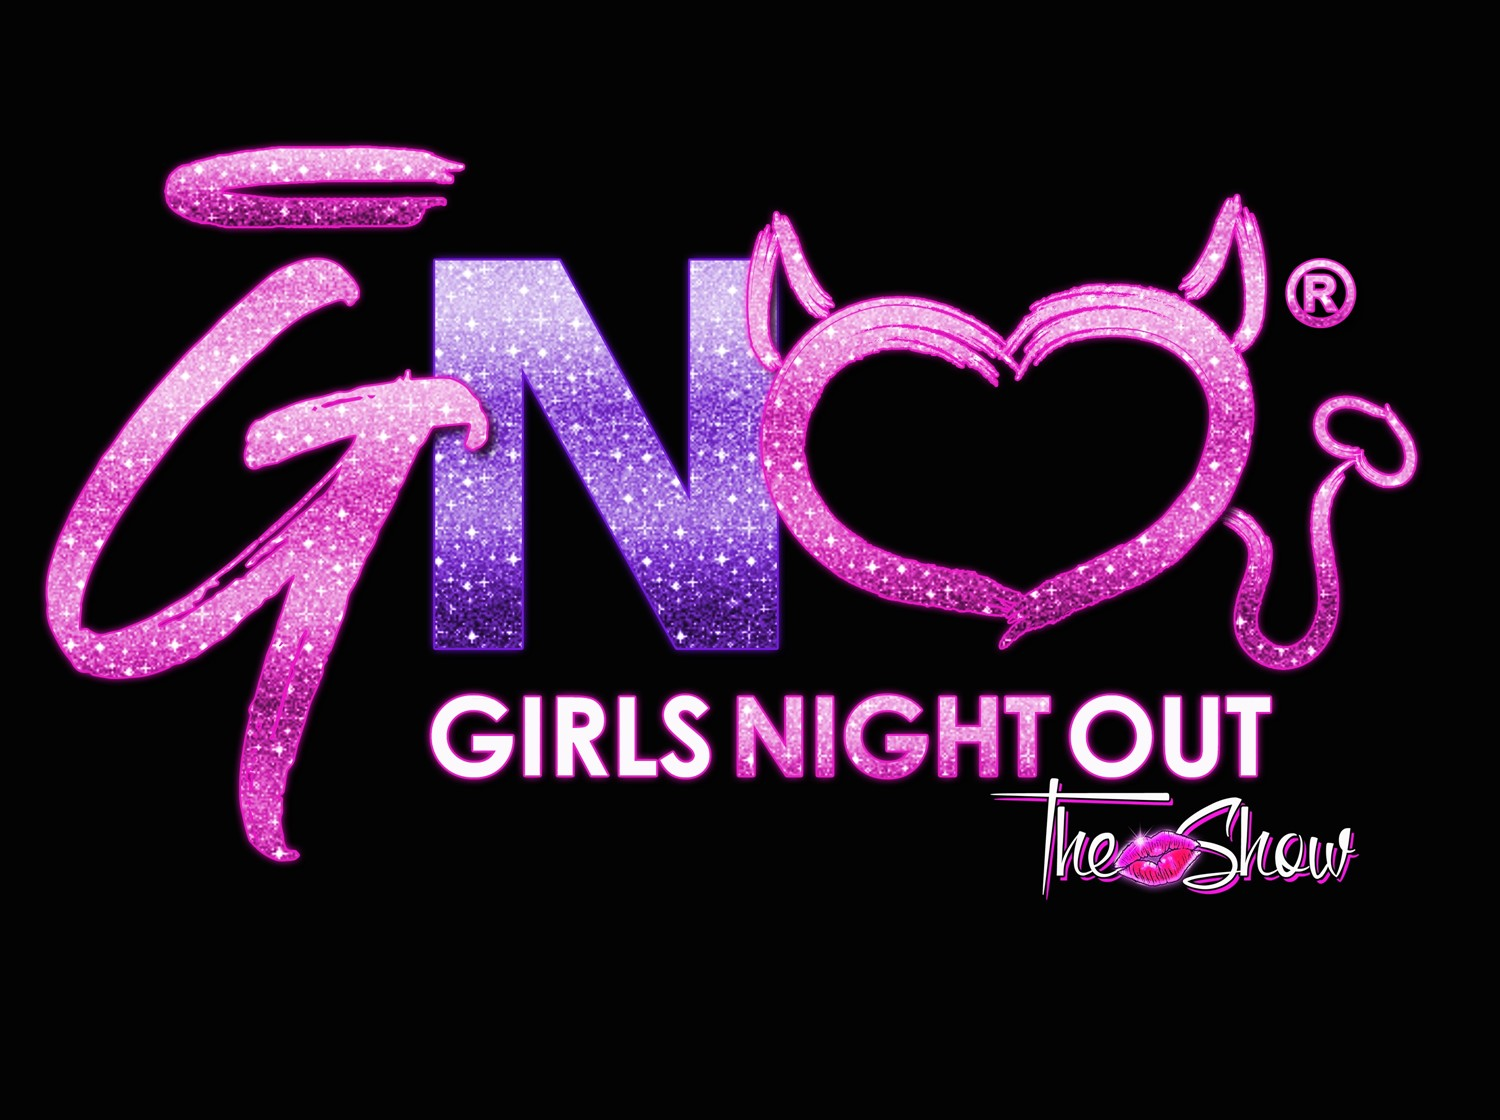 Six Shooter Saloon (18+) Oklahoma City, OK on Mar 12, 20:00@Six Shooter Saloon - Buy tickets and Get information on Girls Night Out the Show tickets.girlsnightouttheshow.com